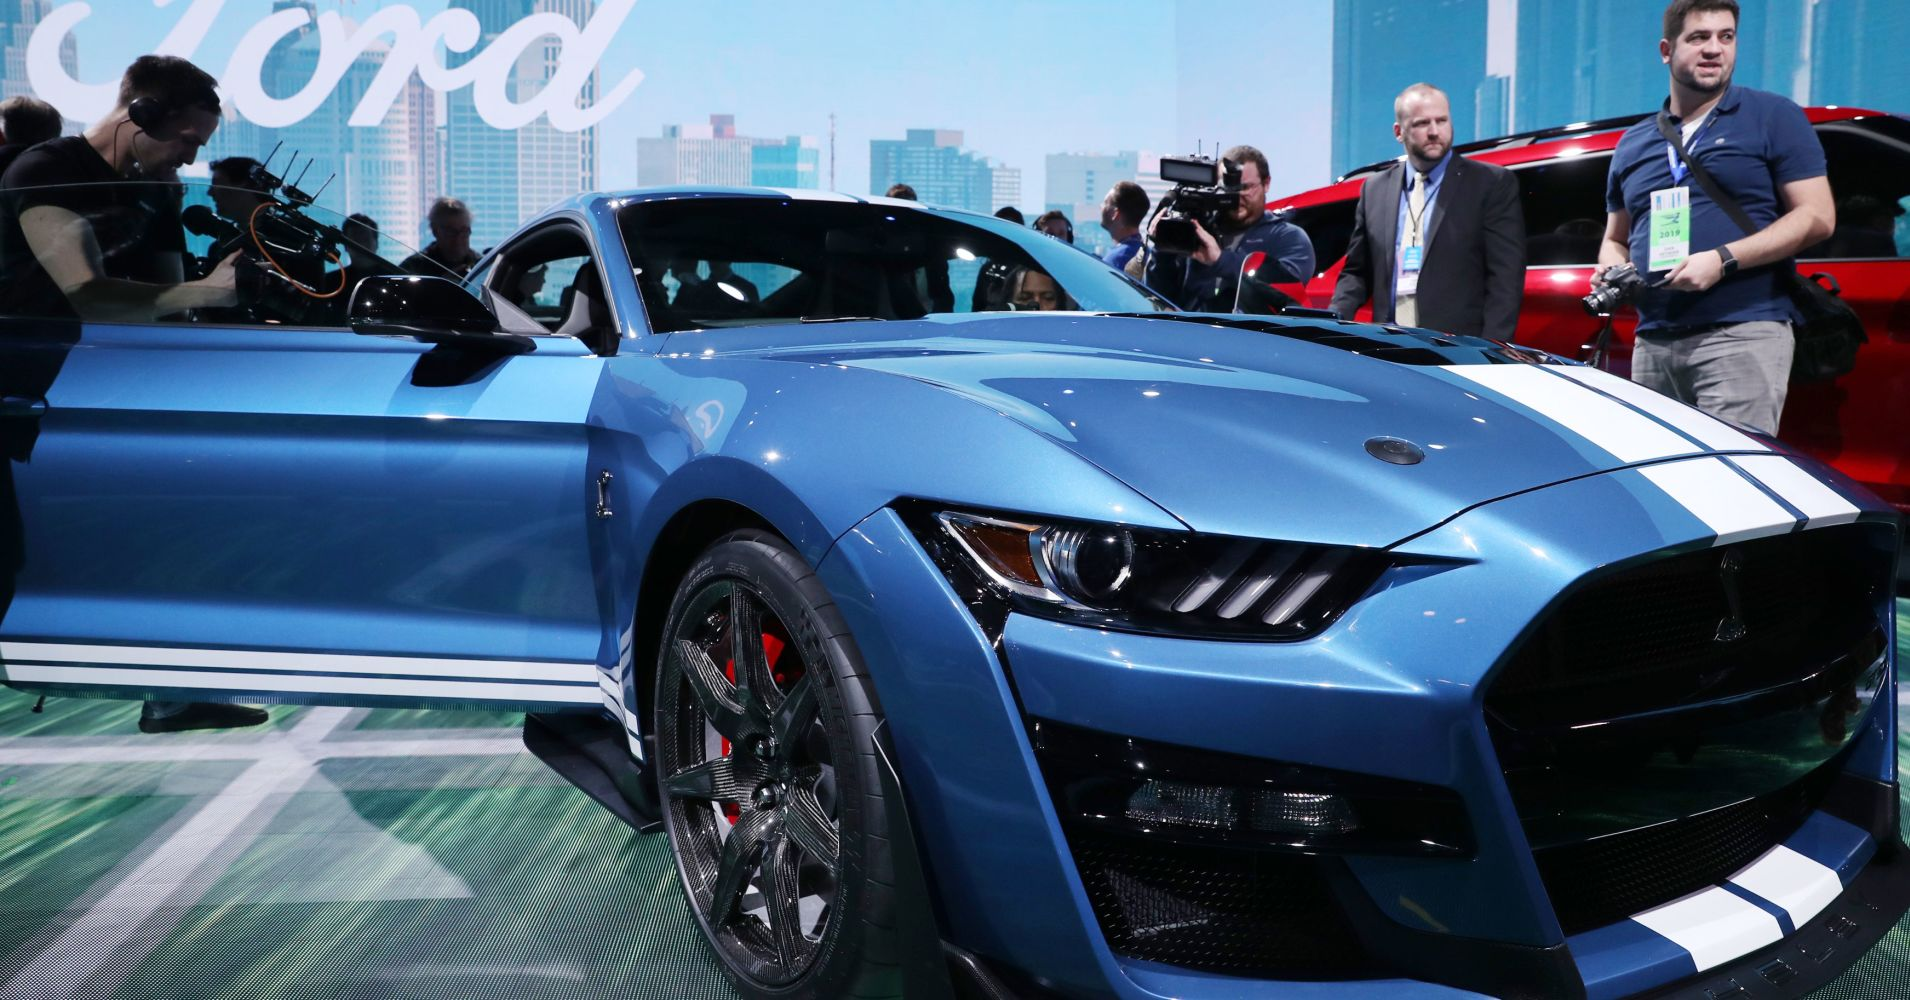 Jonathan Ernst | Reuters Members of the media look over the 2020 Ford Mustang Shelby GT500 after it was revealed at the North American International Auto Show in Detroit, Michigan, January 14, 2019.